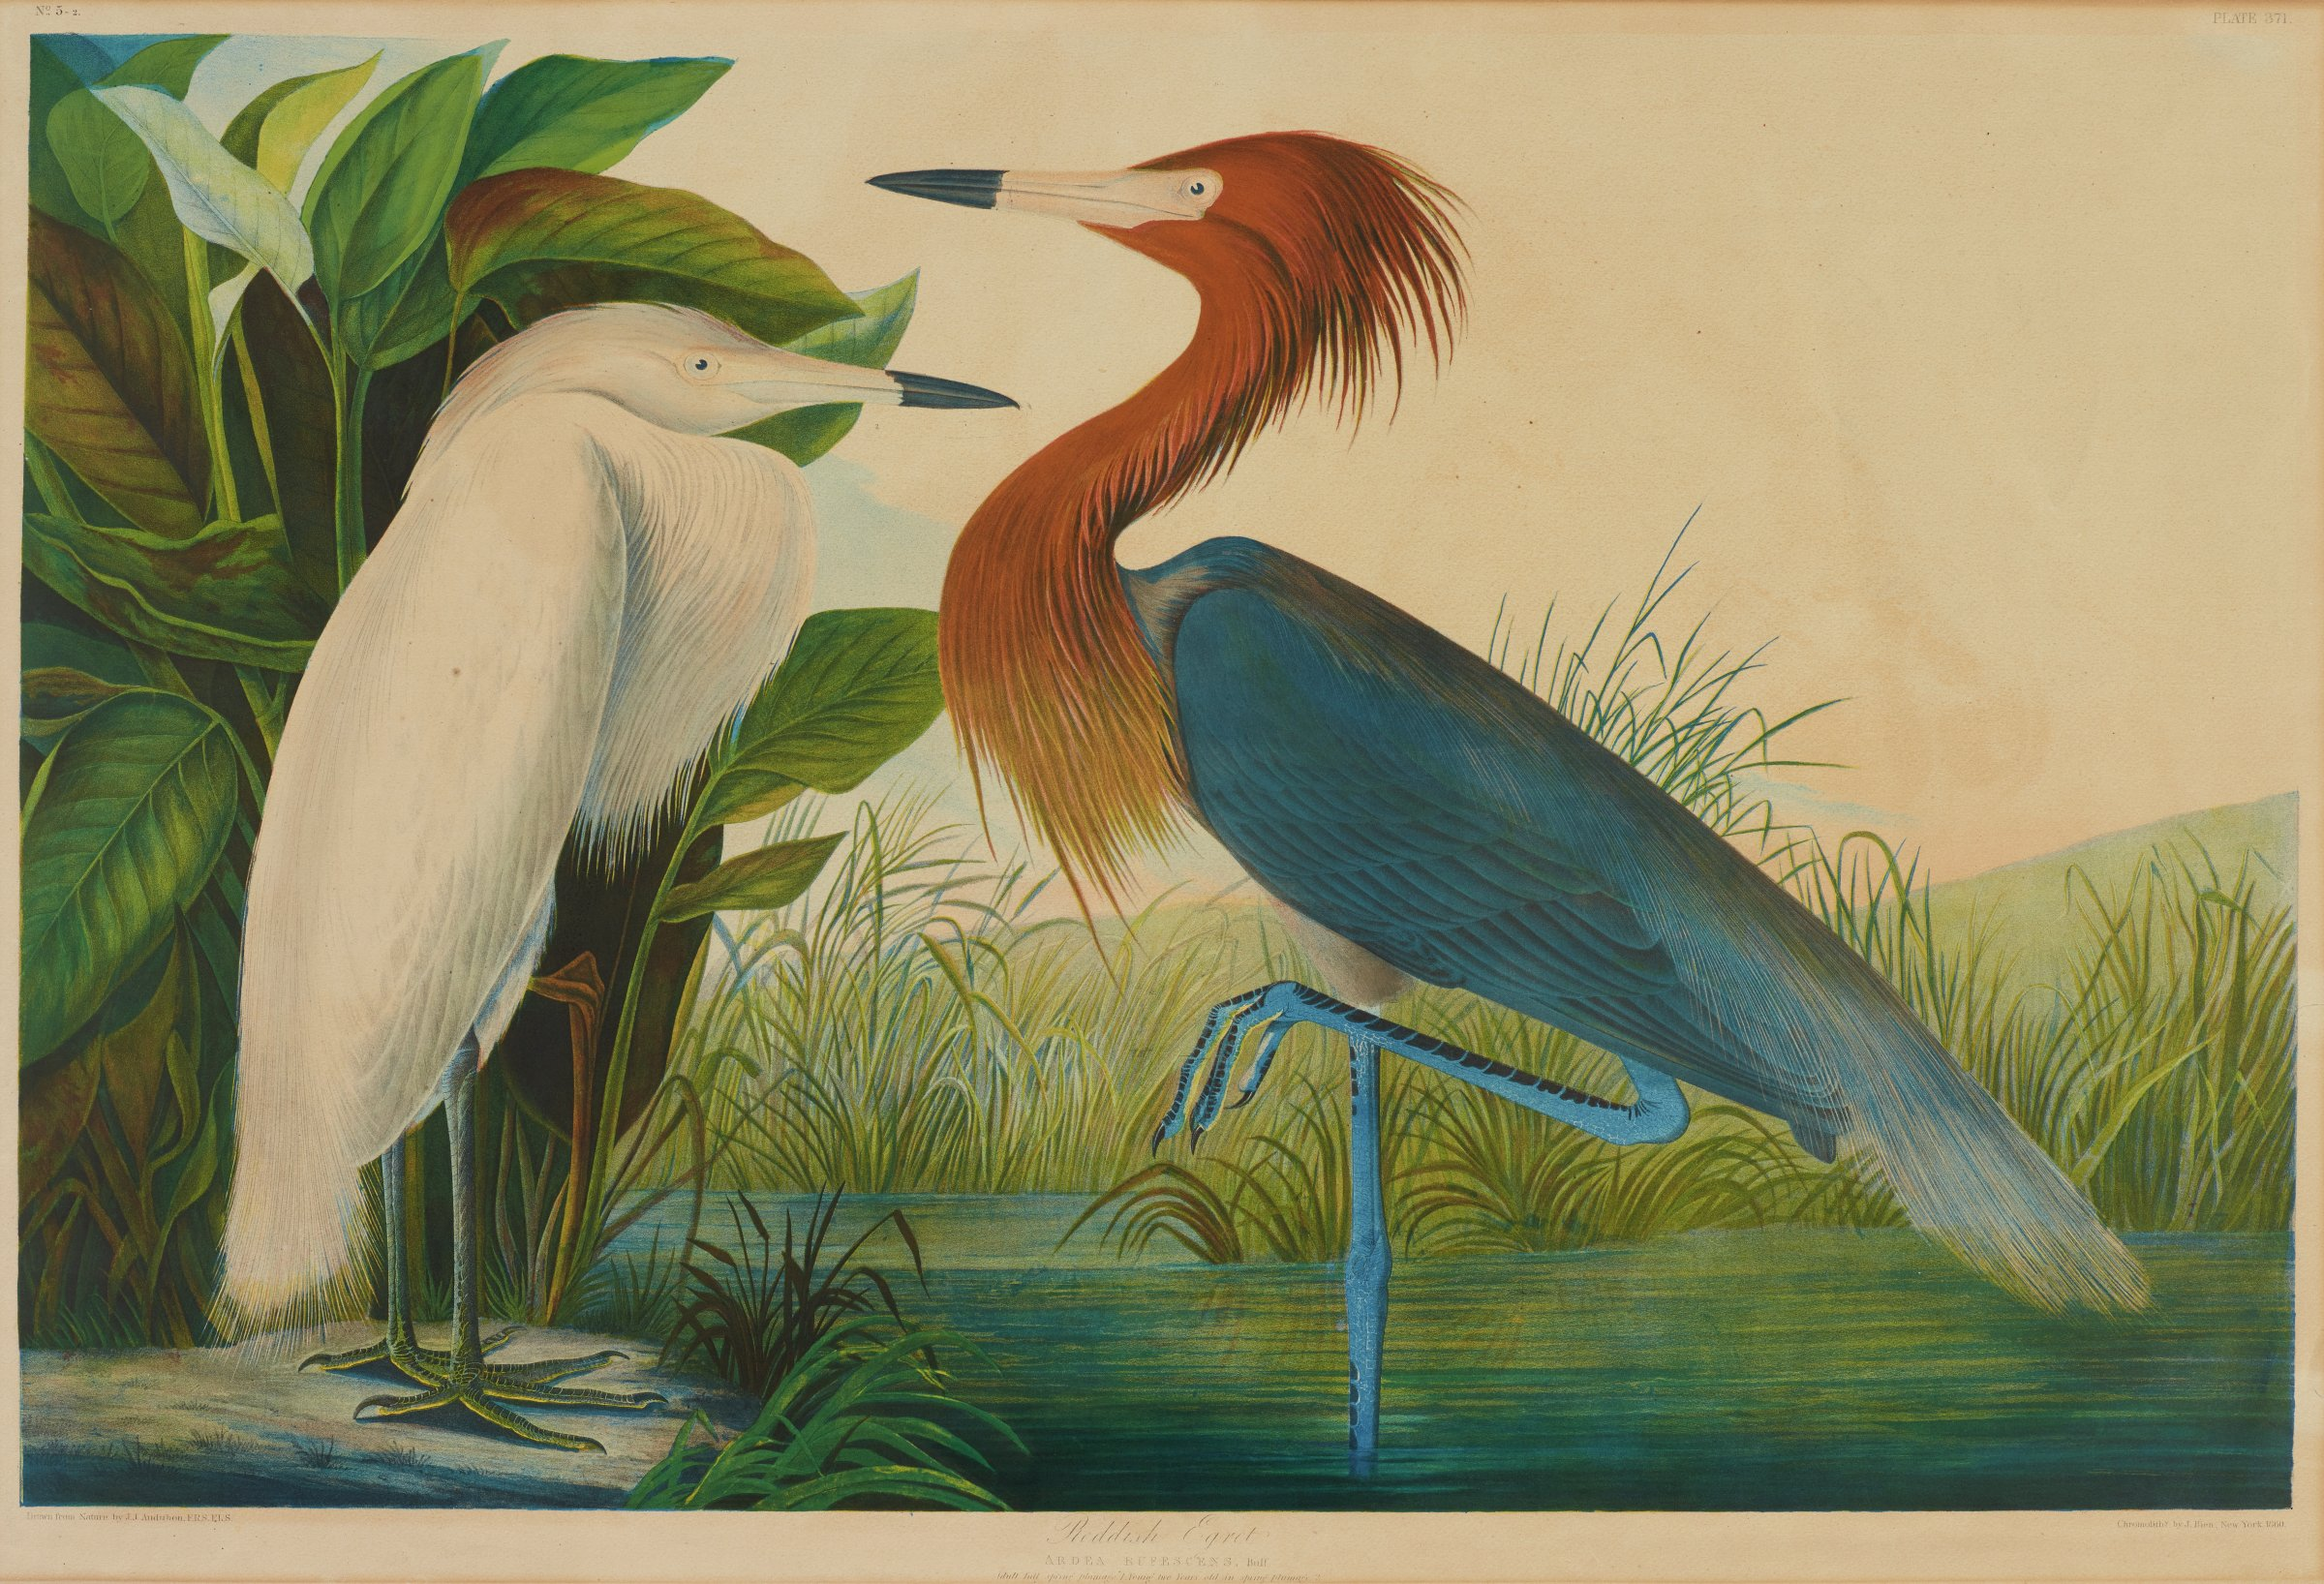 Two egrets are depicted in a marshy landscape. A white egret is shown on the left standing on the bank. A red and blue feathered egret balances on one foot in the water.